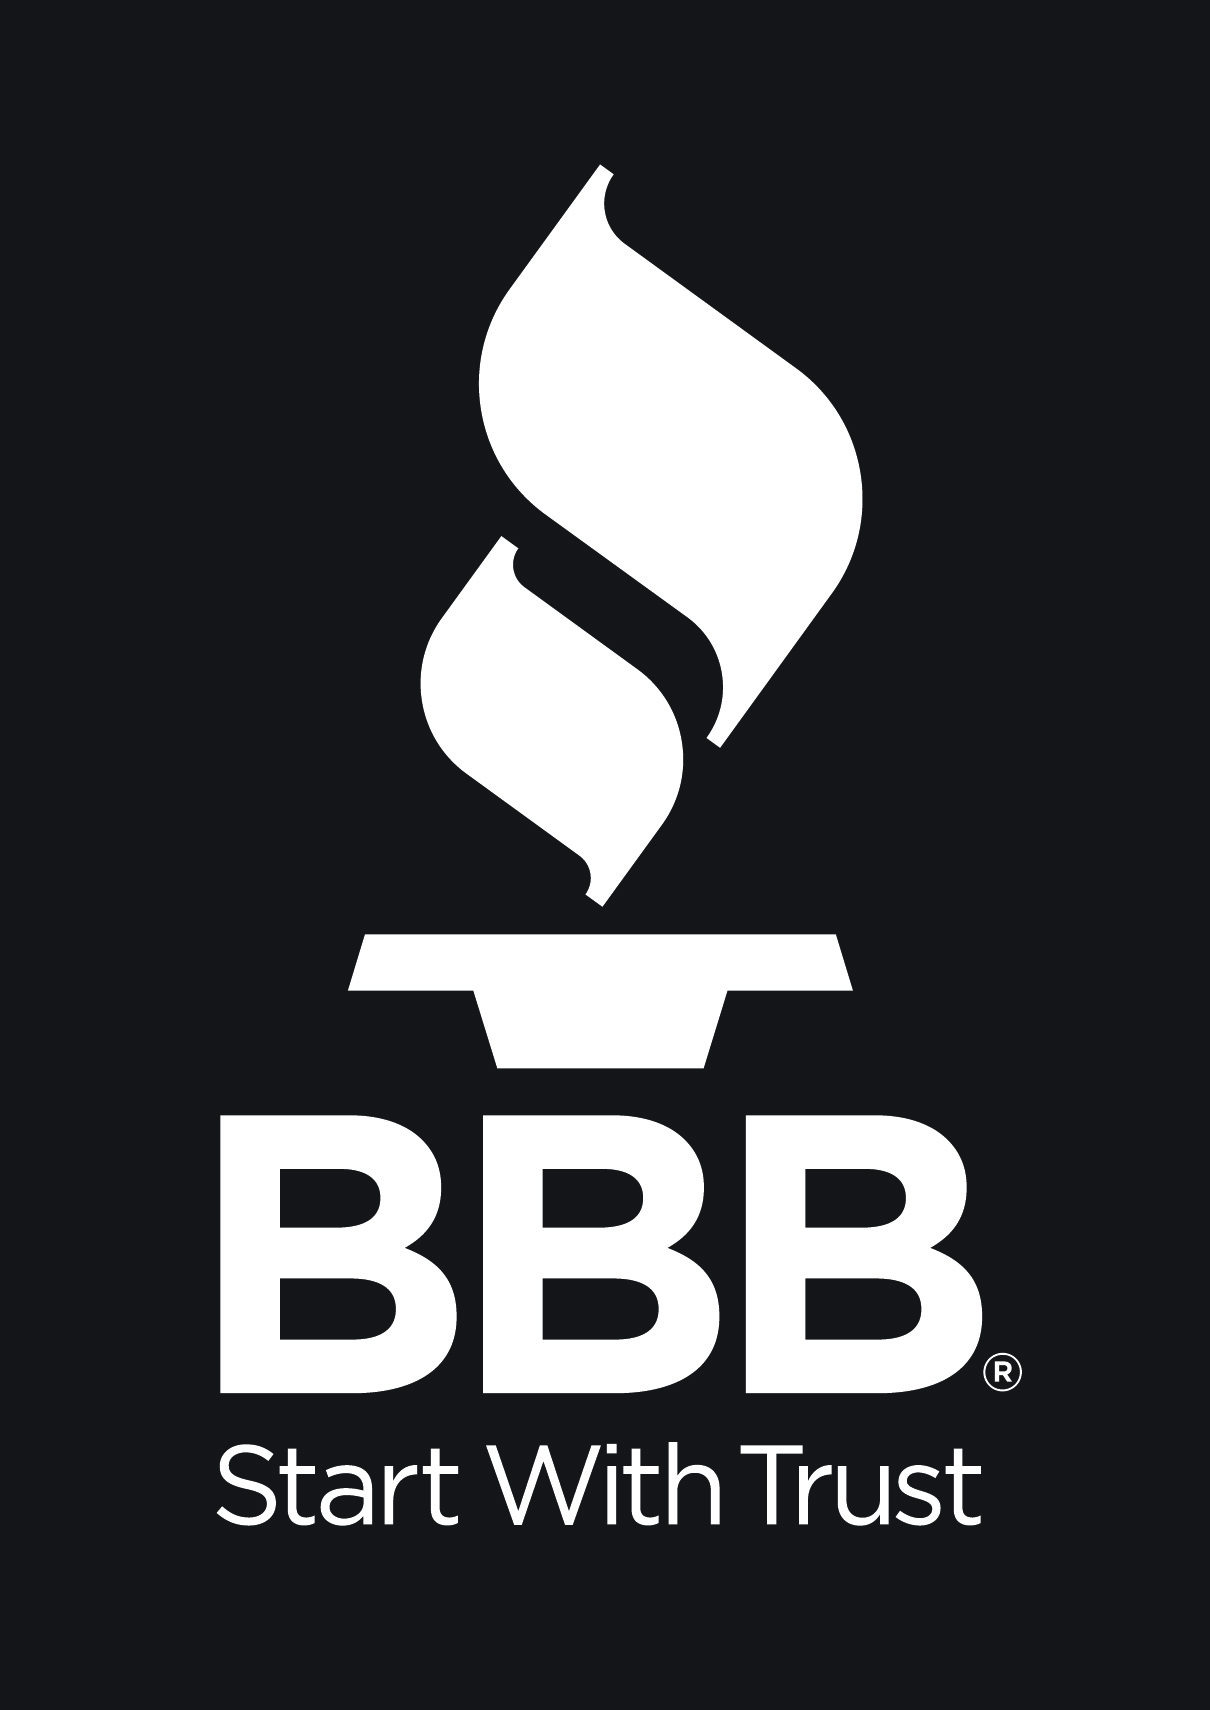 BBB | Better Business Bureau logo